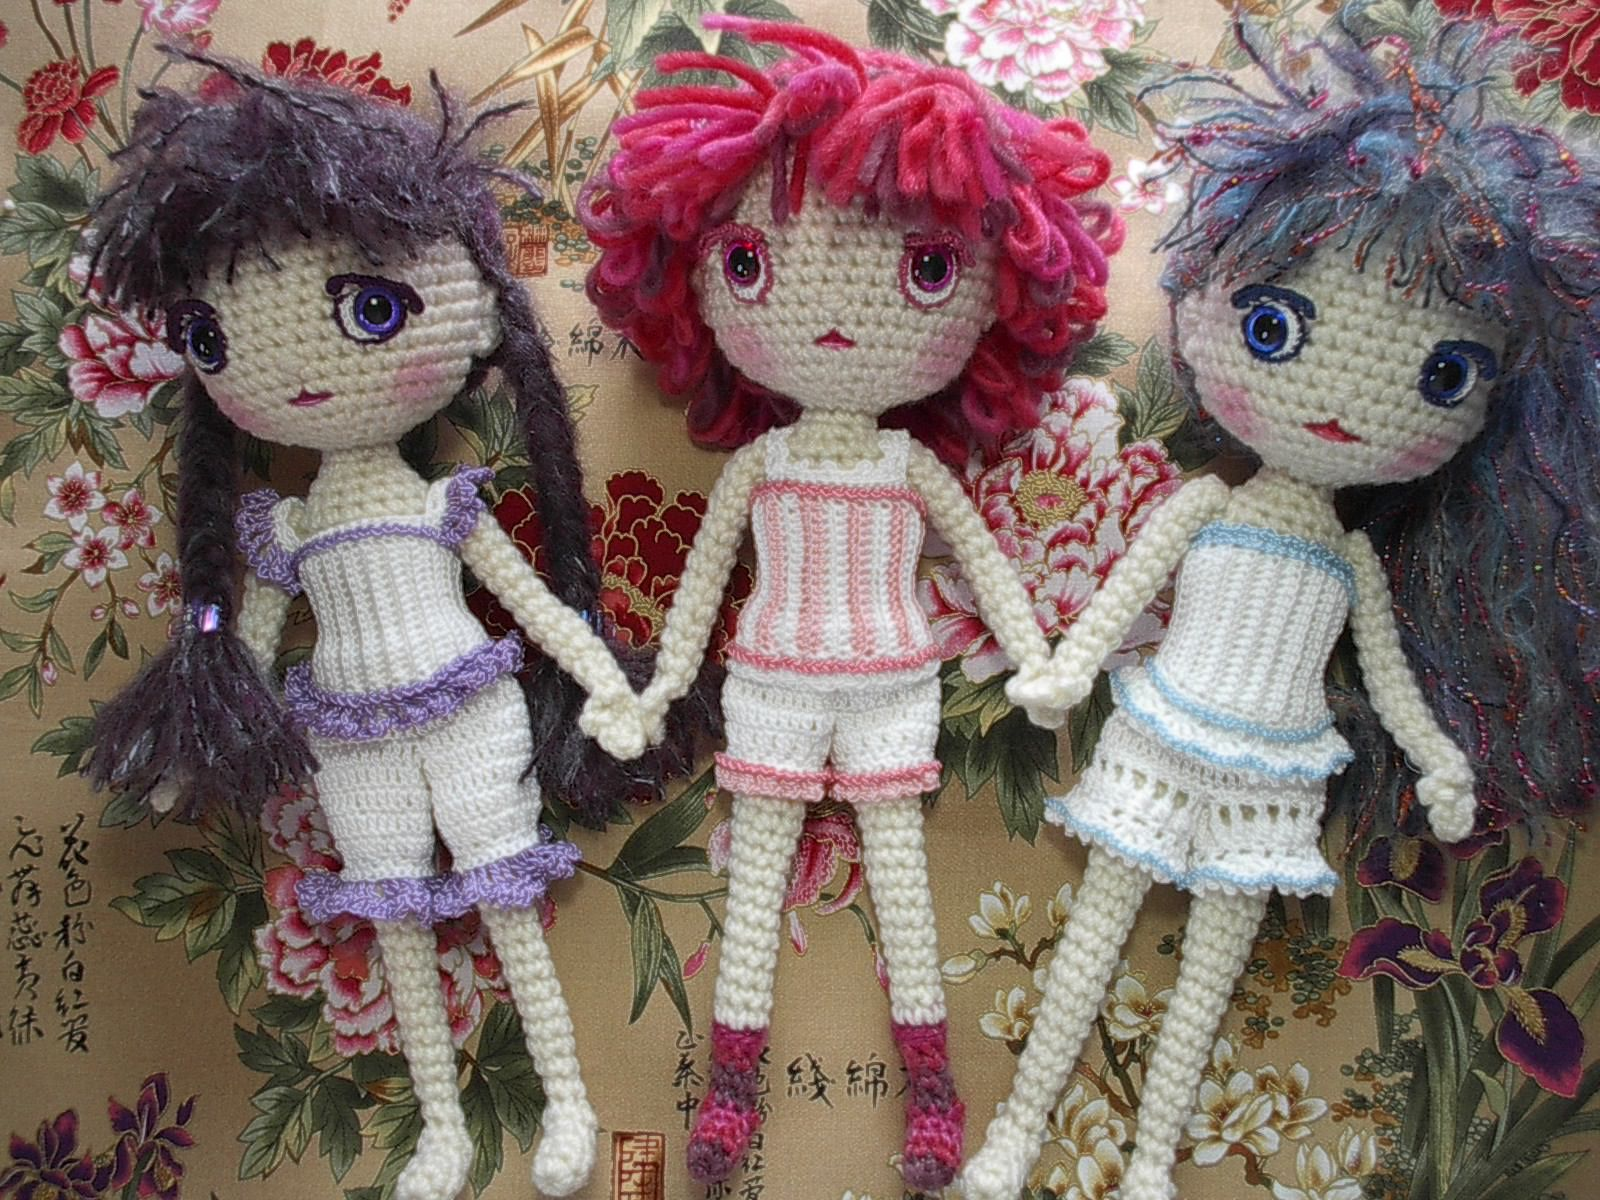 By hook by hand free spirit clothing free crochet patterns by hook by hand free spirit loads of dolls crochet and knitting plus dolls clothes to make bankloansurffo Choice Image